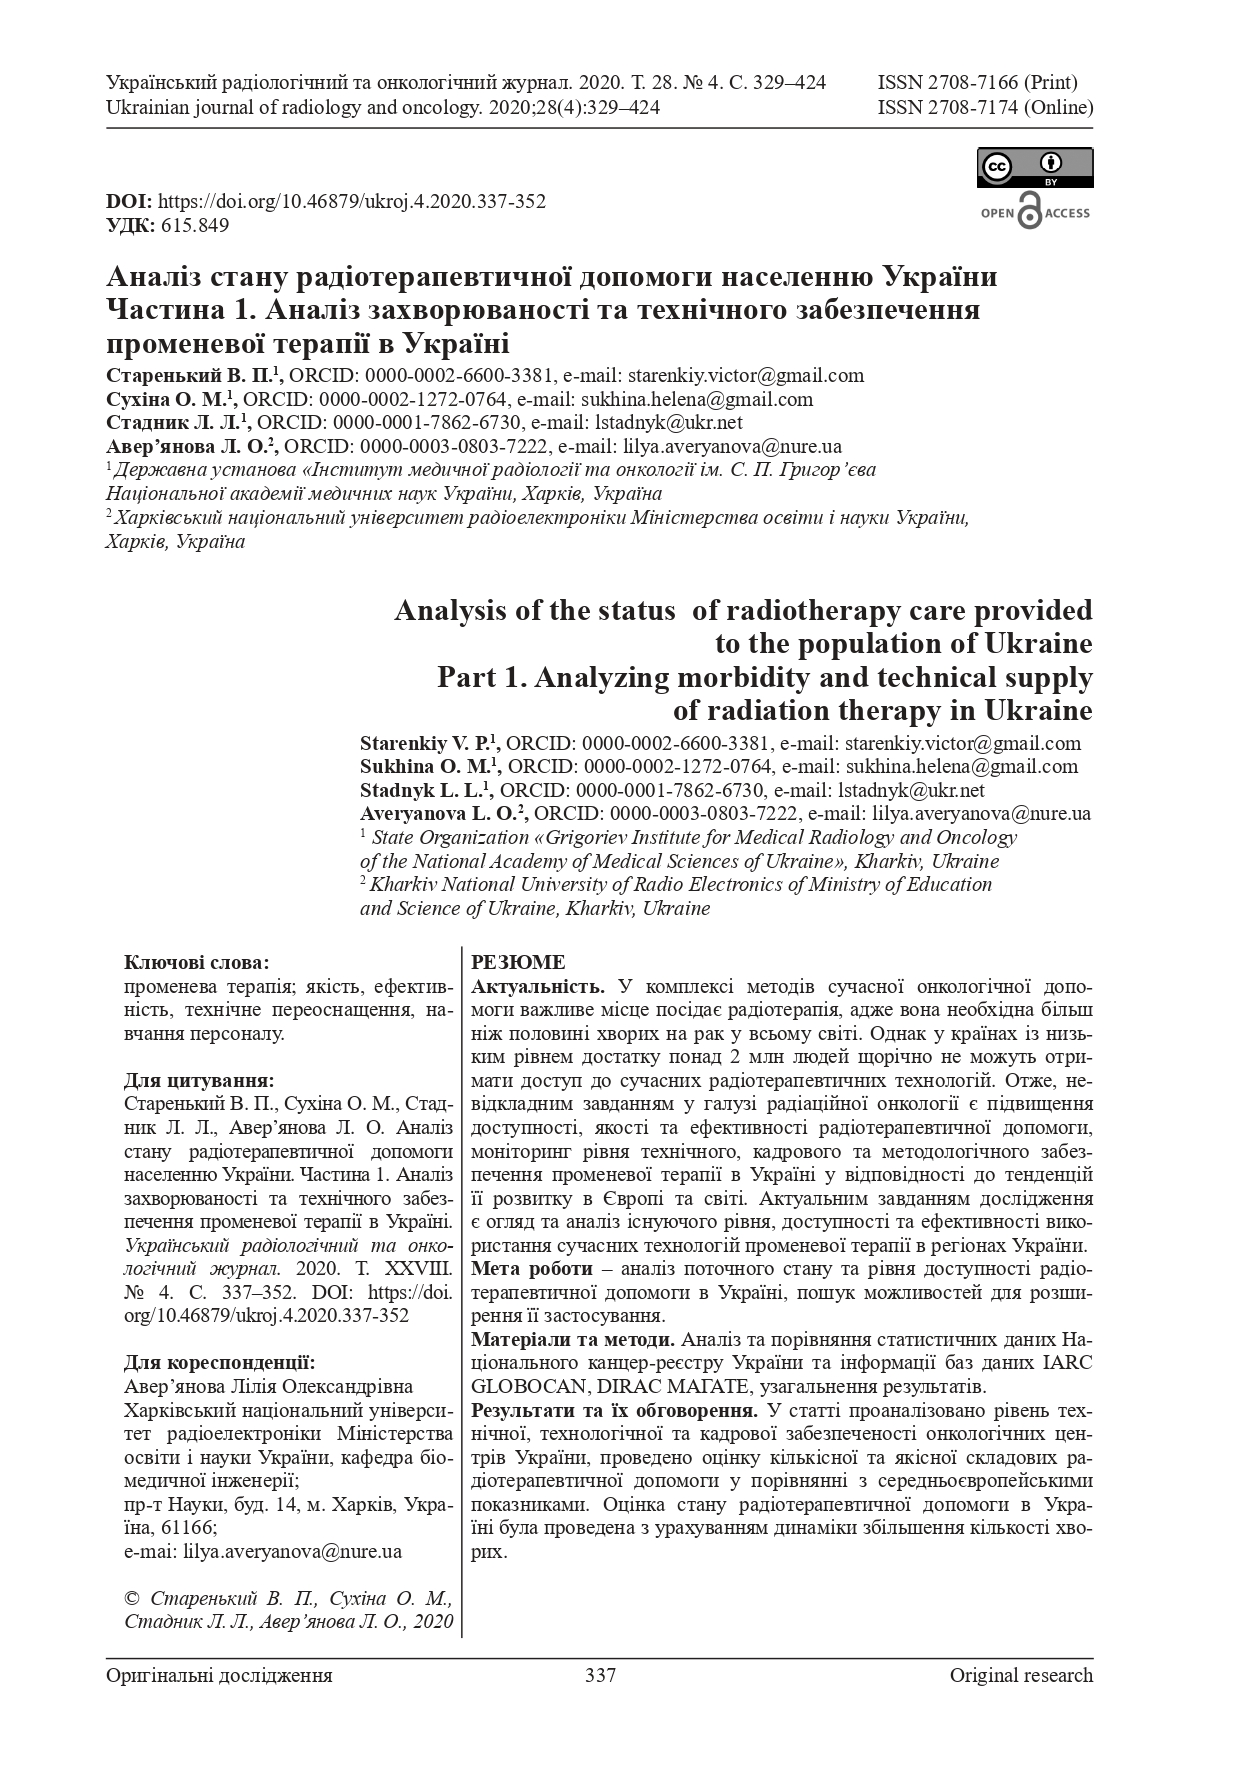 Analysis of the status of radiotherapy